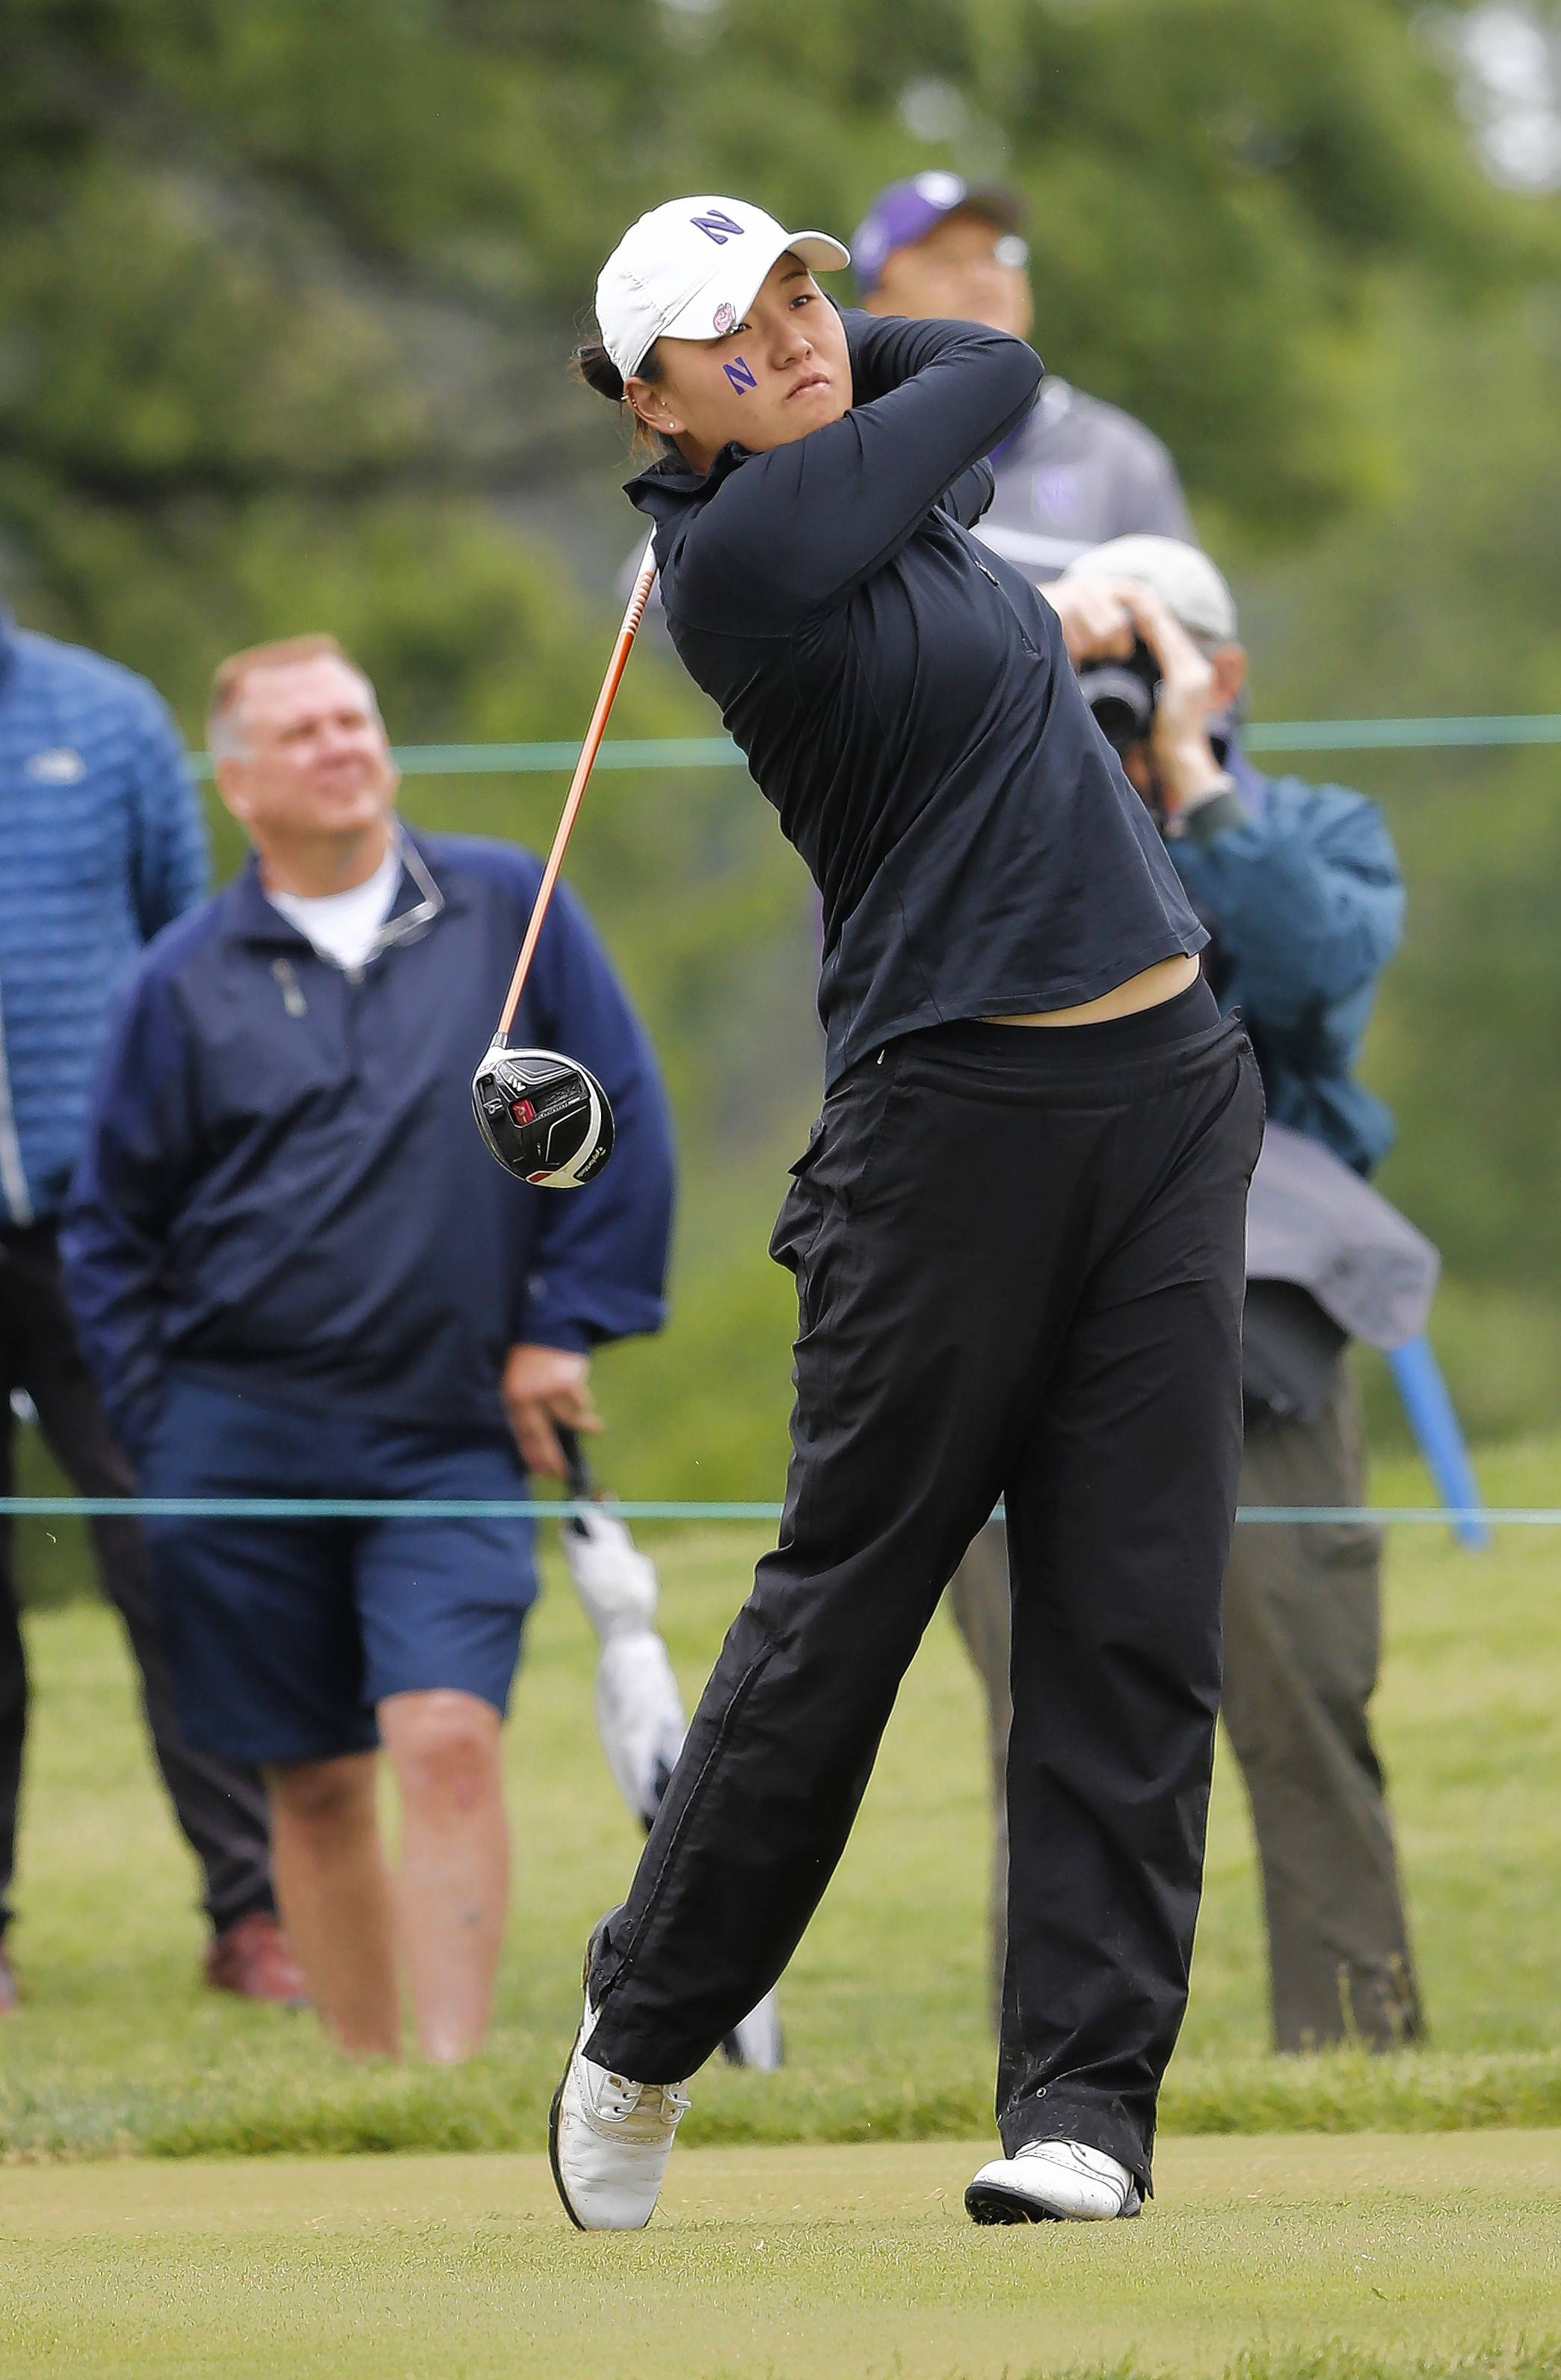 Hannah Kim, here teeing off for Northwestern during the final round of the NCAA Division I Women's Golf Championships against Arizona State at Rich Harvest Farms on May 24, 2017, picked up her first professional victory Wednesday. (AP Photo/Charles Rex Arbogast)